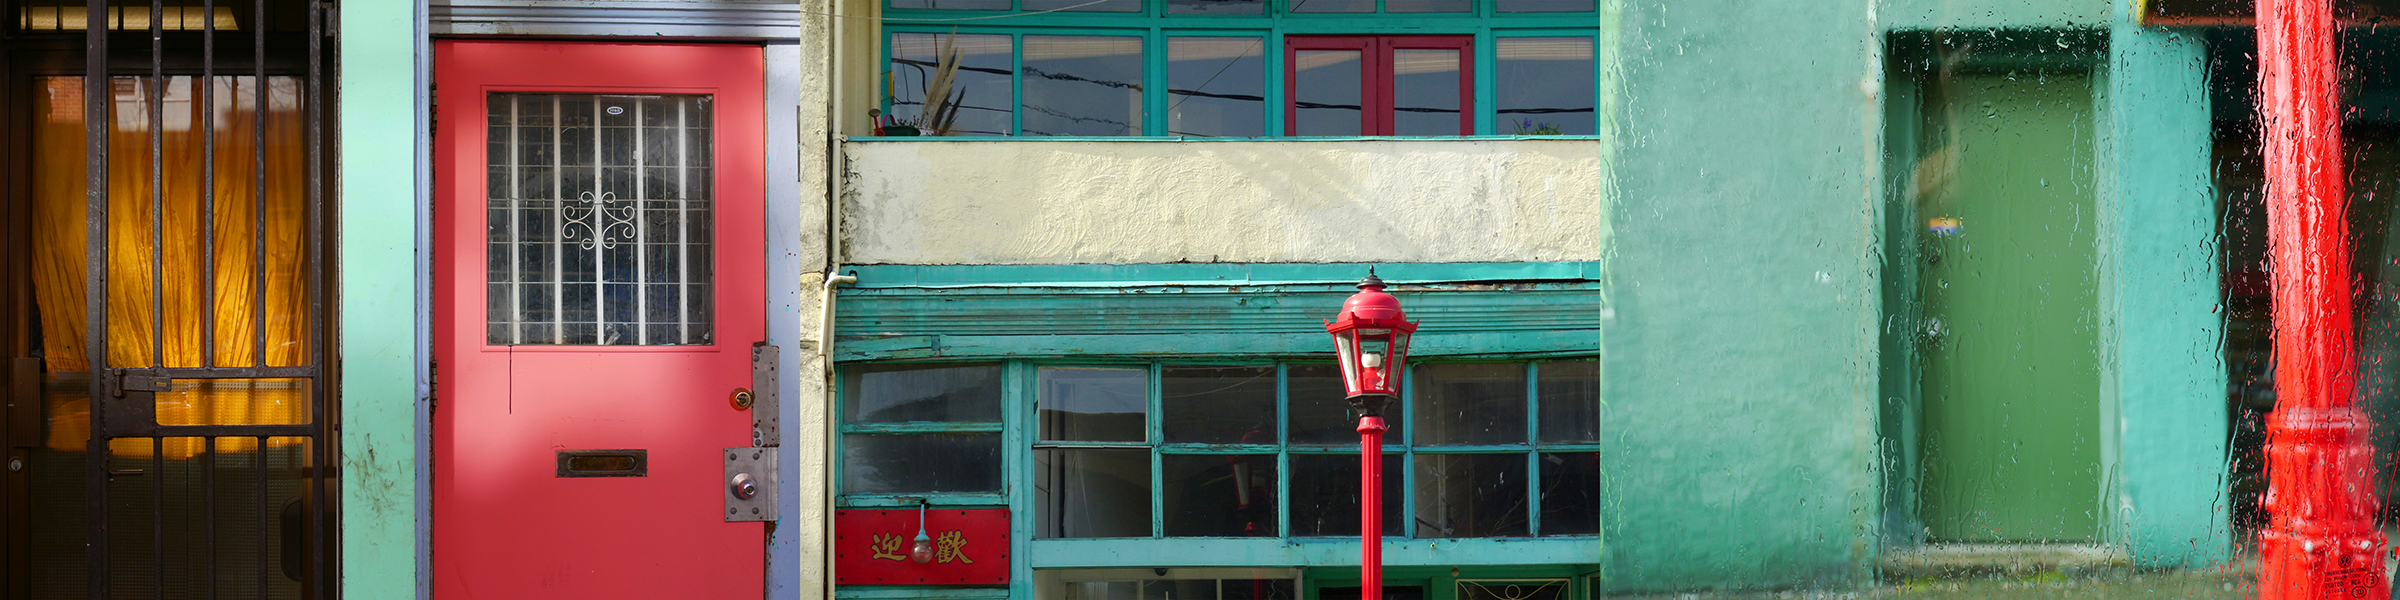 FrancisSmithLouise_web04–Teal Tryptic,Chinatown.jpg